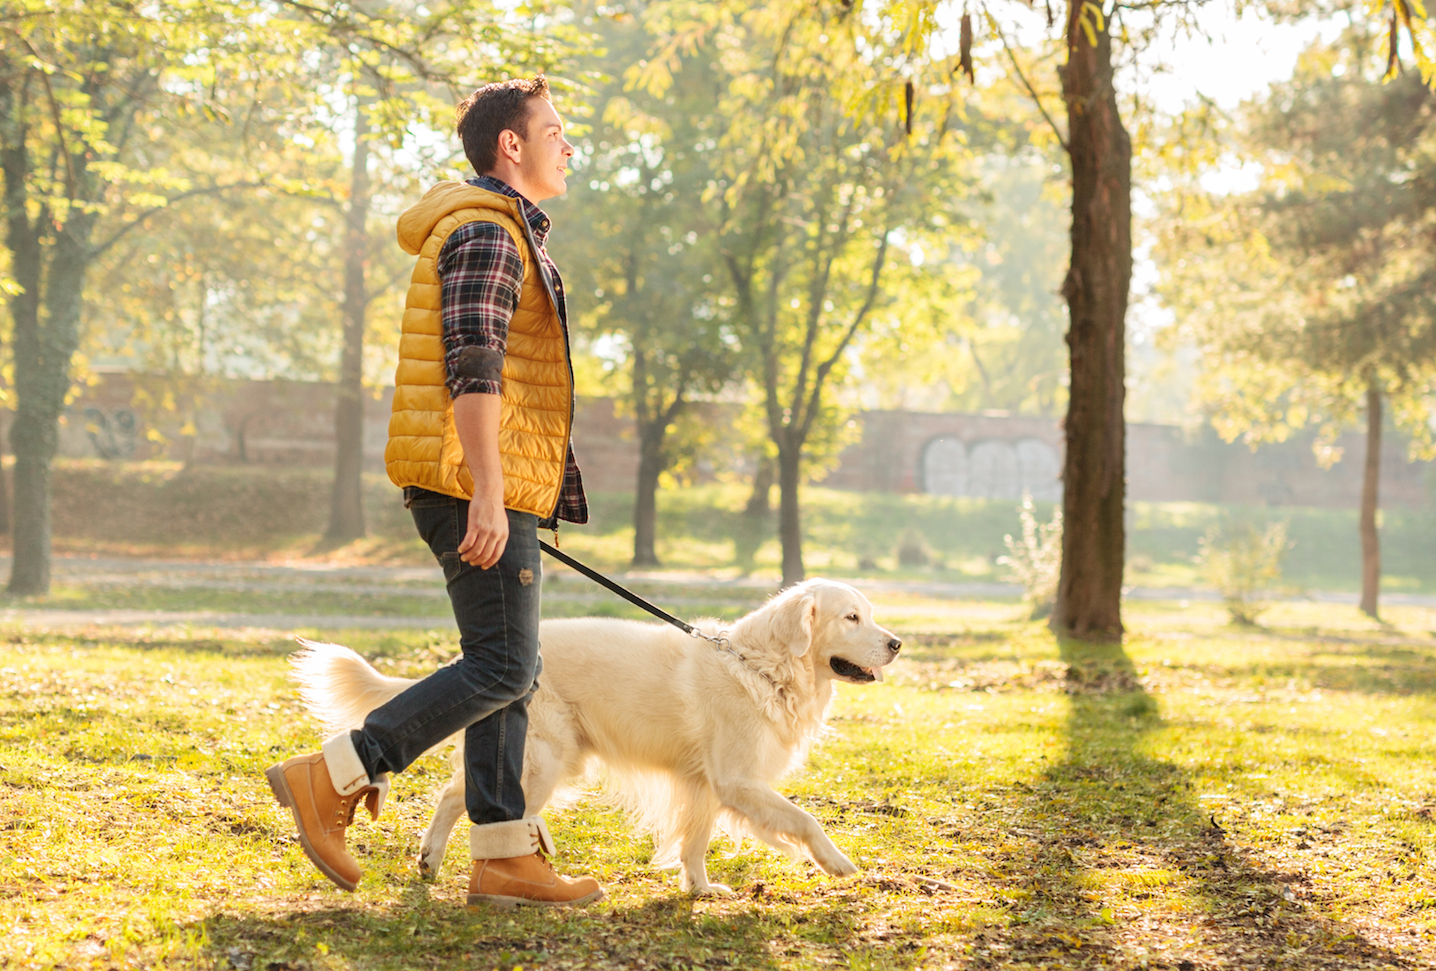 Researchers have found that owning a dog can make you appear happier, more attractive, and more approachable to others.